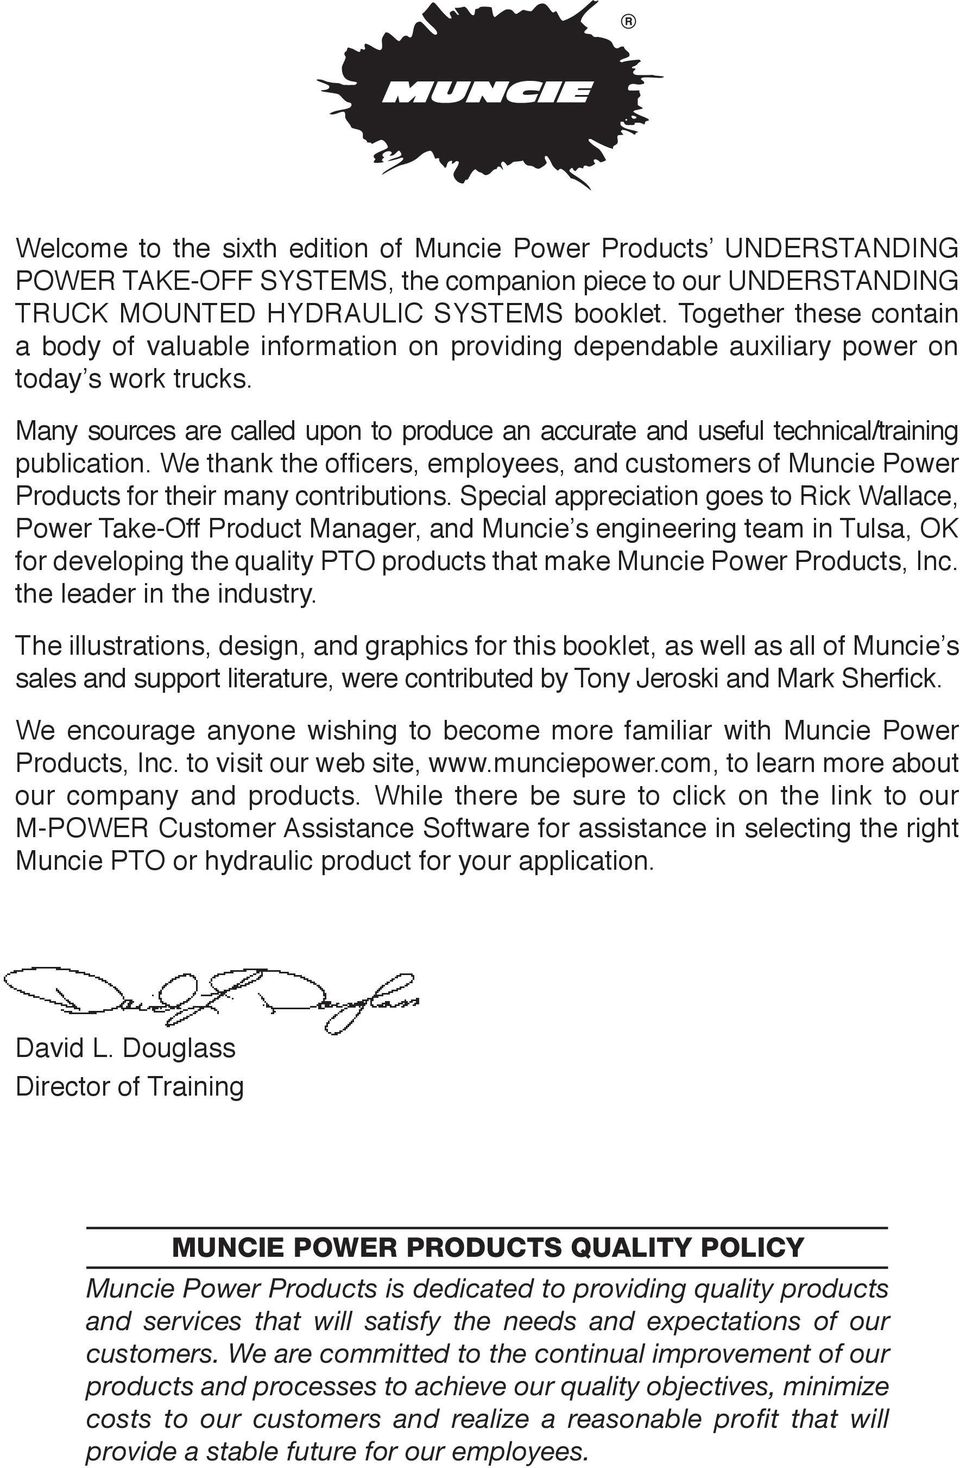 Many sources are called upon to produce an accurate and useful technical/training publication. We thank the officers, employees, and customers of Muncie Power Products for their many contributions.